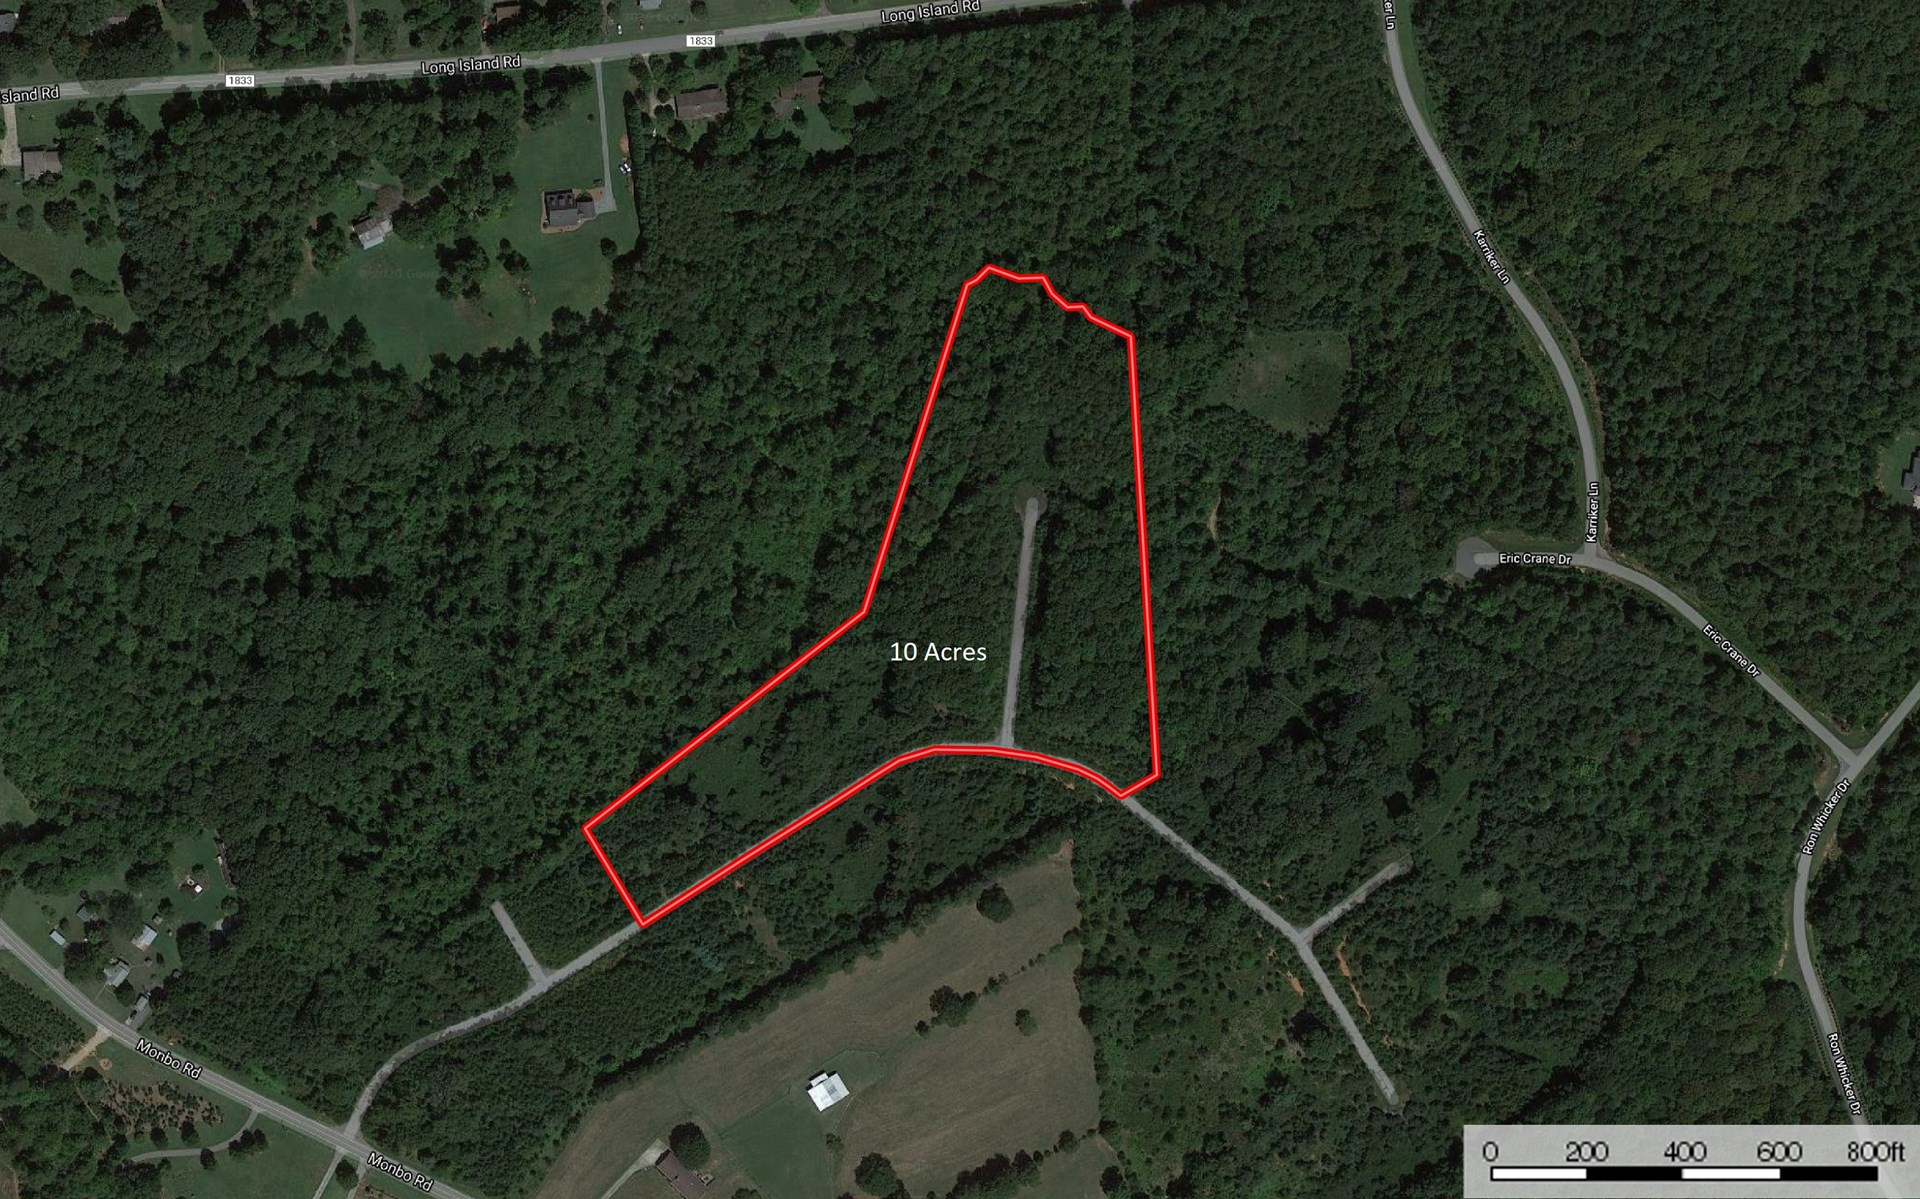 Large Lot For Sale in Catawba Count NC